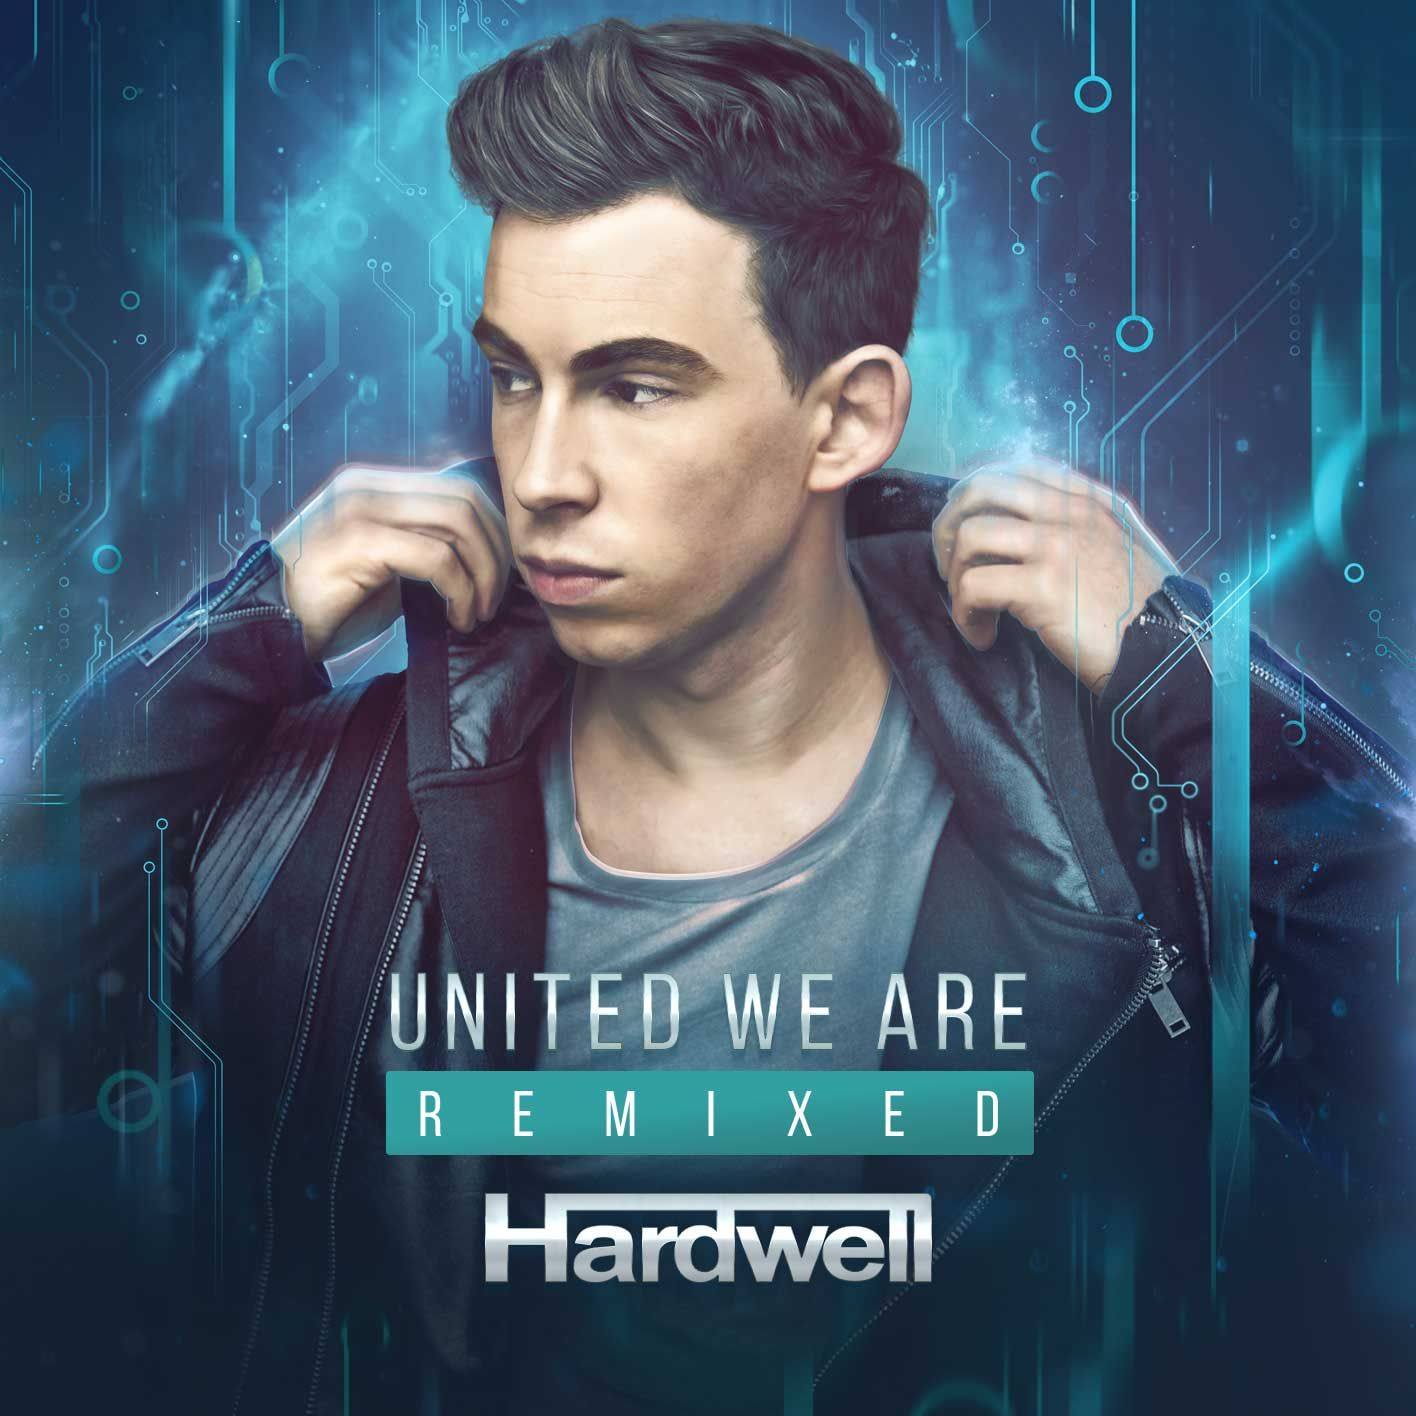 hardwell-remix-album